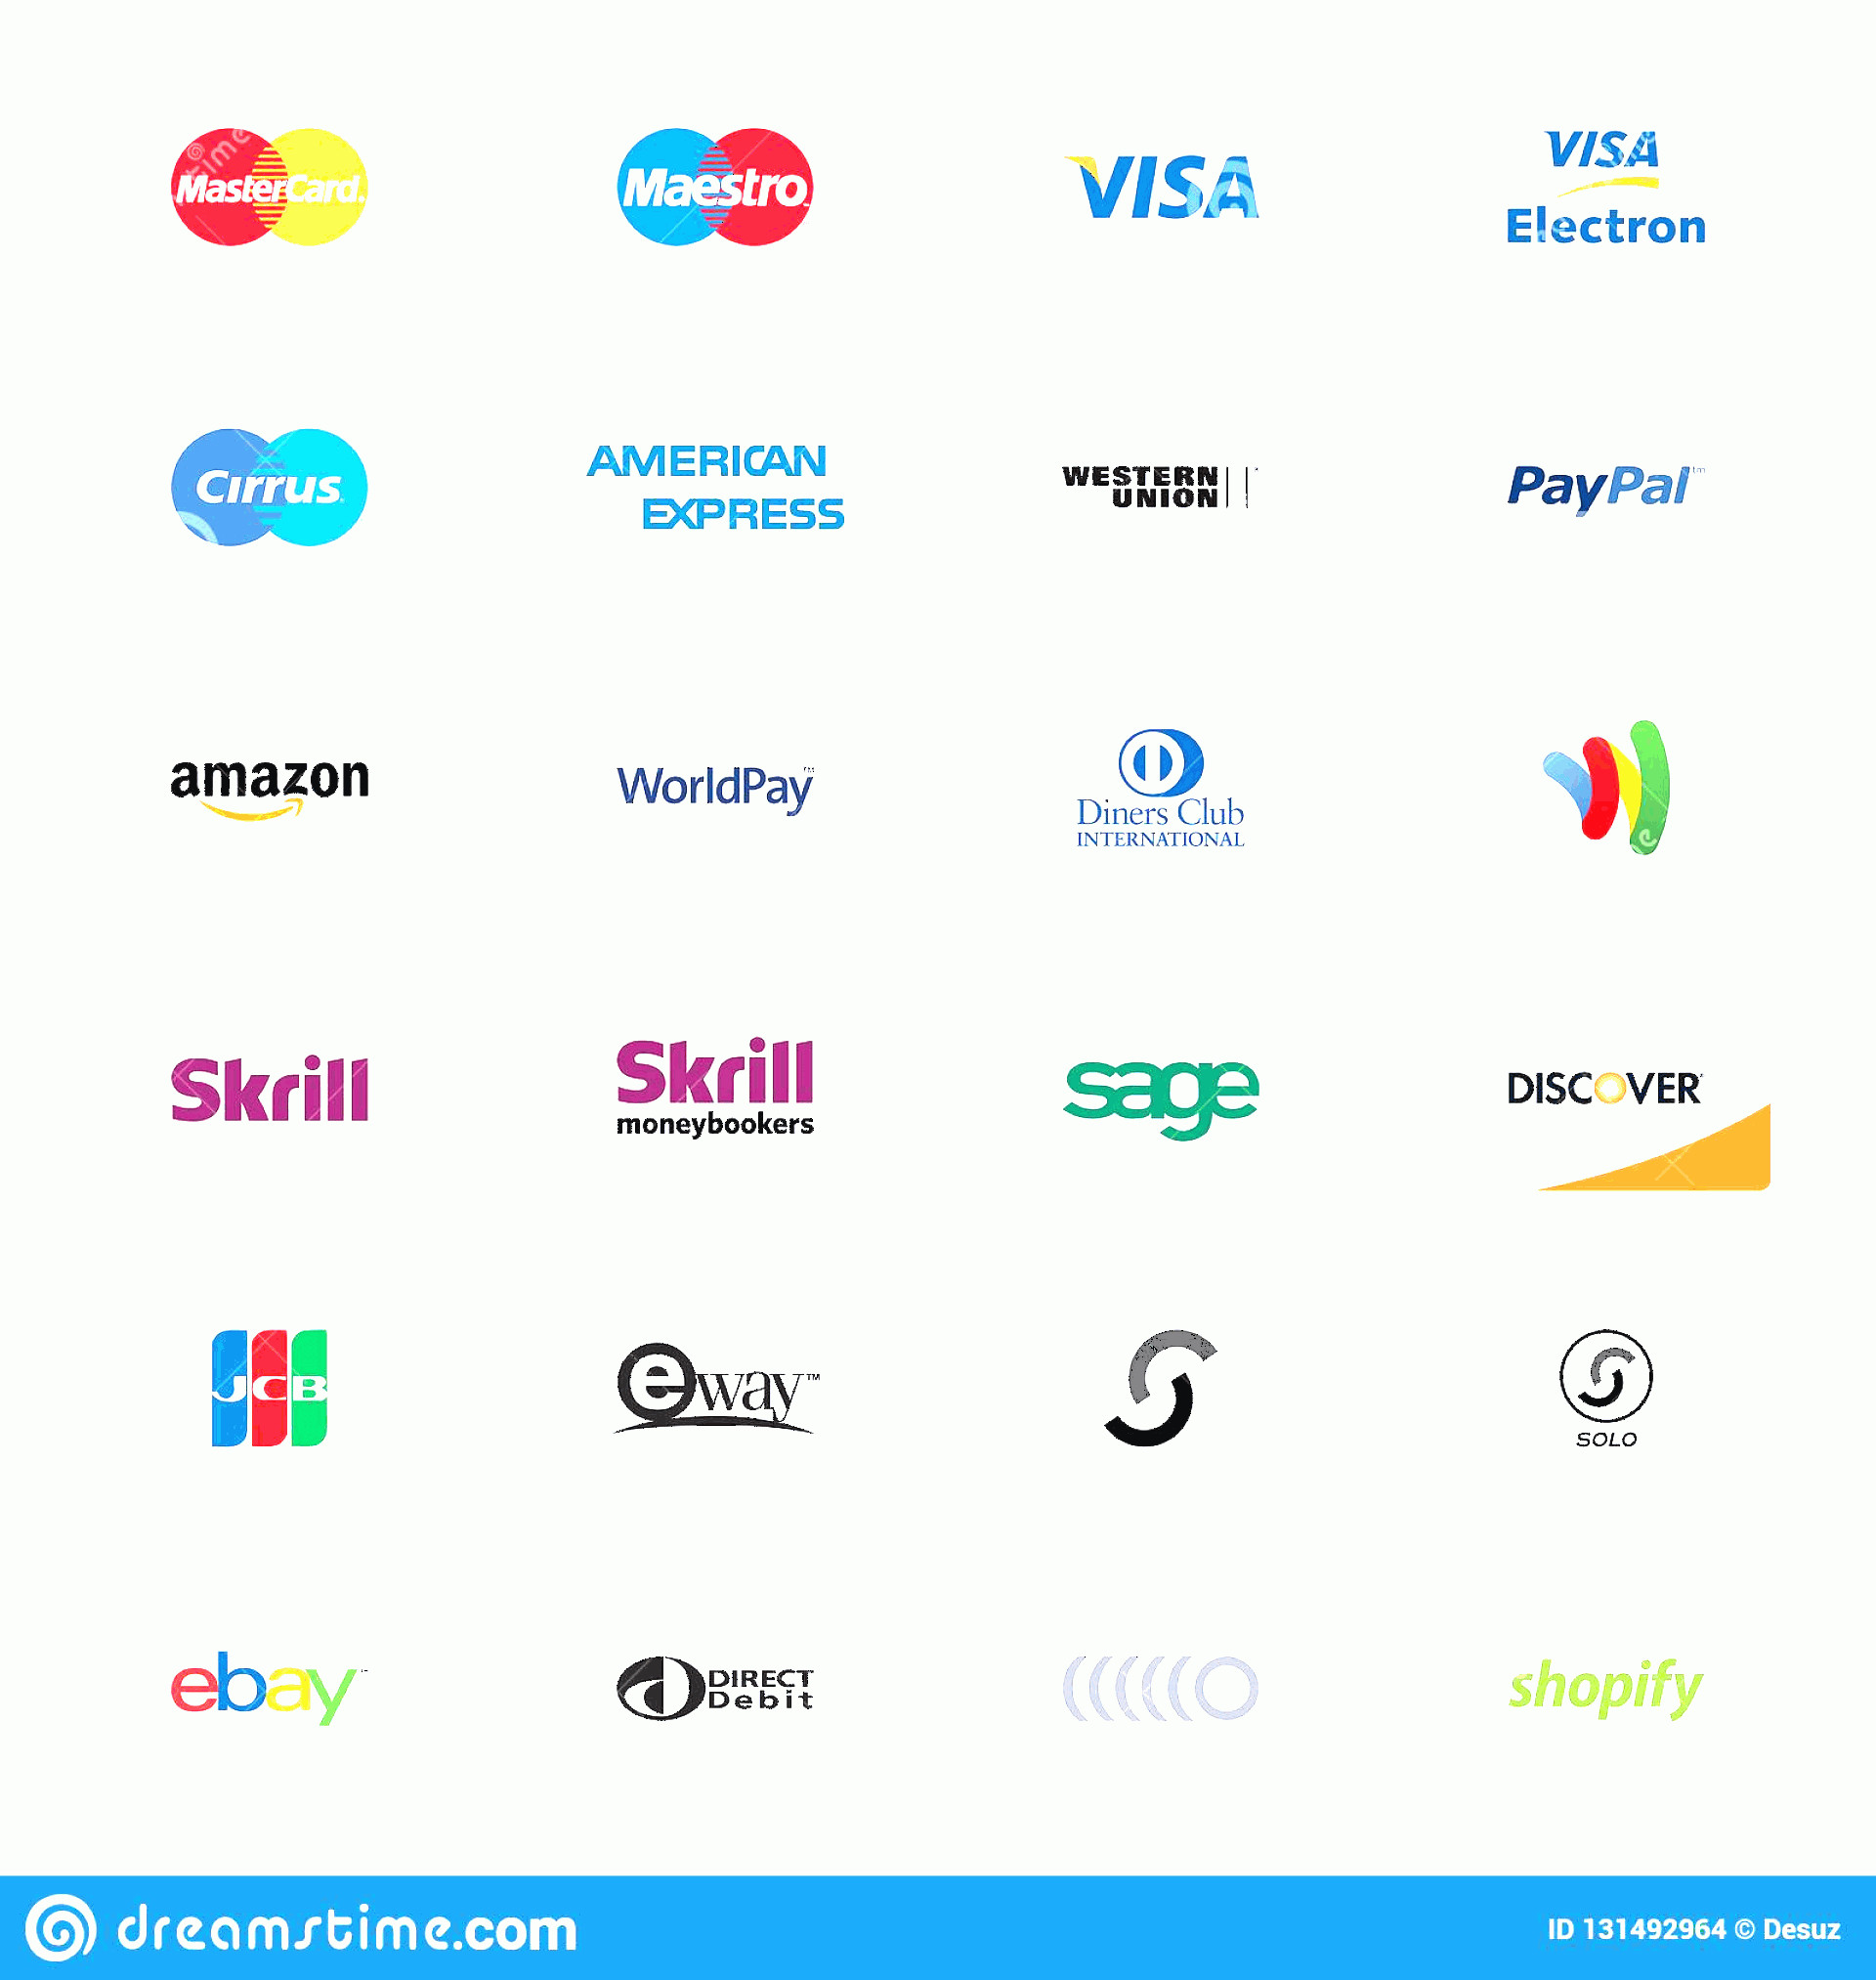 Discover Card Logo Vector: Payment Method Logos White Background Collection Vector Basic Methods Credit Cards Money Transfer Systems Online Image